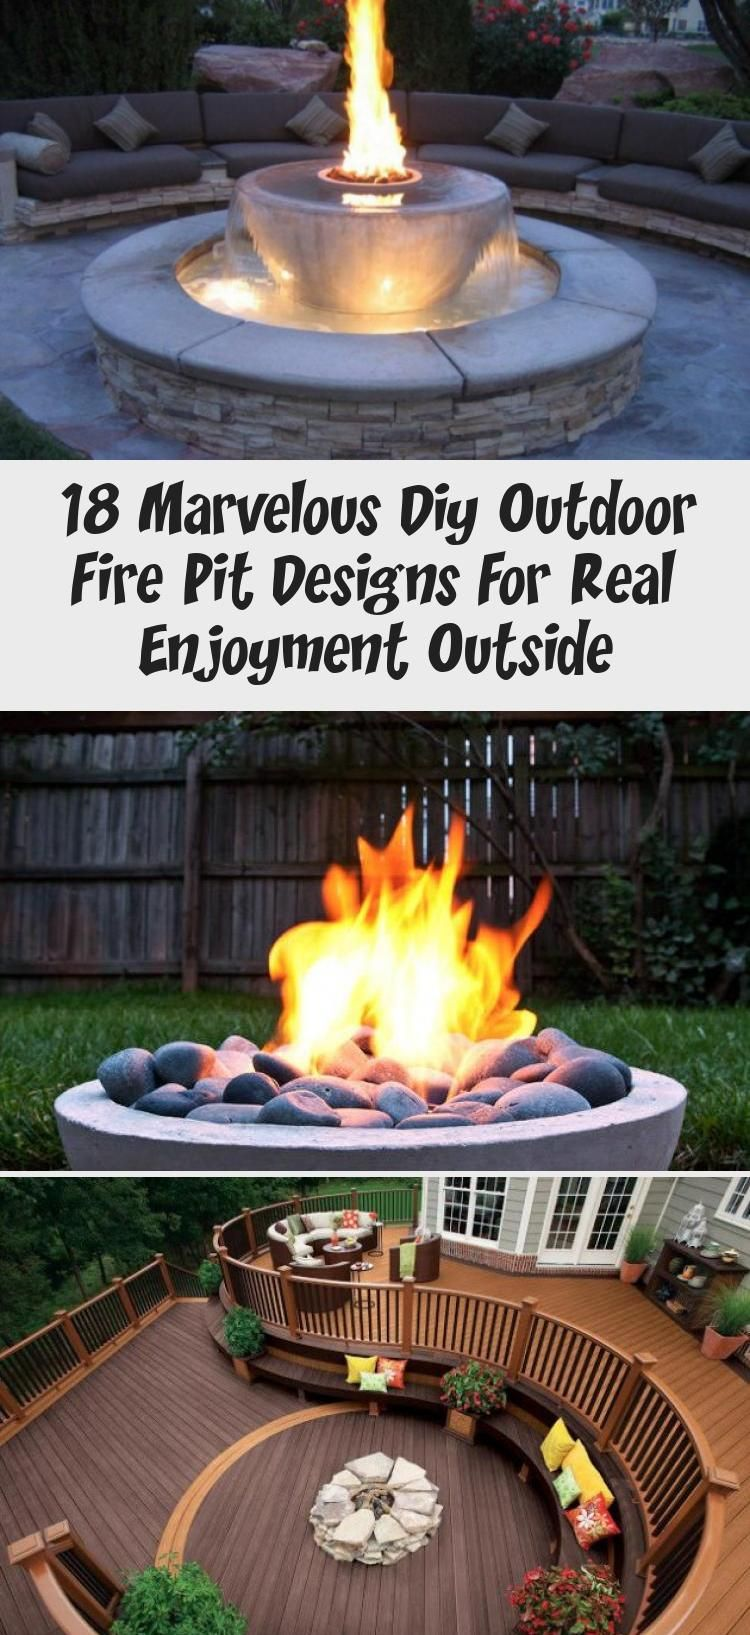 18 Marvelous Diy Outdoor Fire Pit Designs For Real Enjoyment